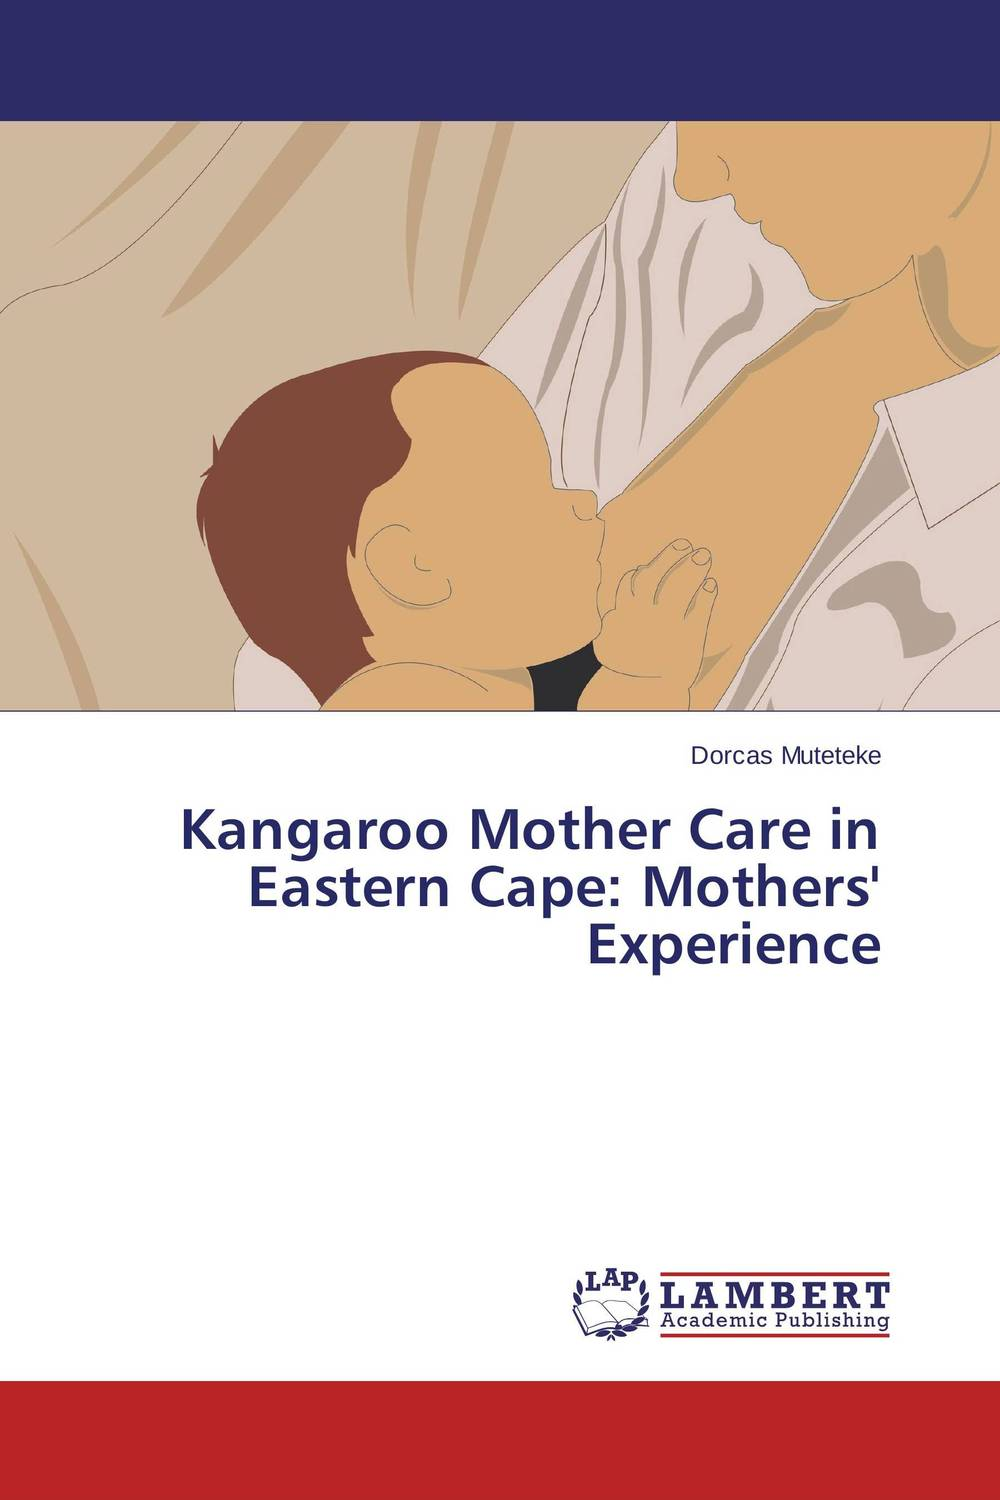 Kangaroo Mother Care in Eastern Cape: Mothers' Experience